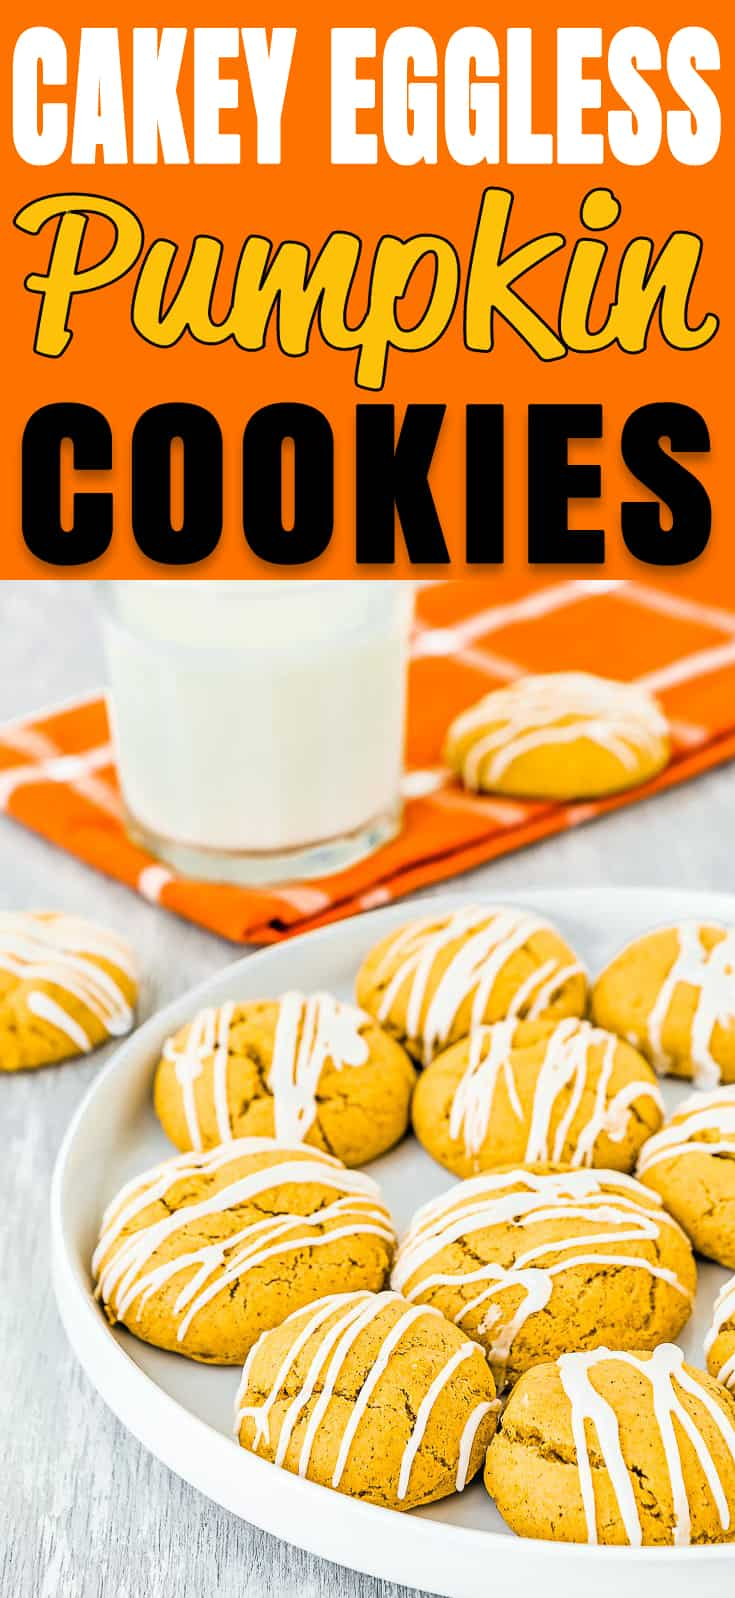 These Cakey Eggless Pumpkin Cookies are melt-in-your-mouth soft and loaded with warm spices! Every bite is an explosion of fall flavors. Simply irresistible! #recipe #pumpkin #cookies #eggless